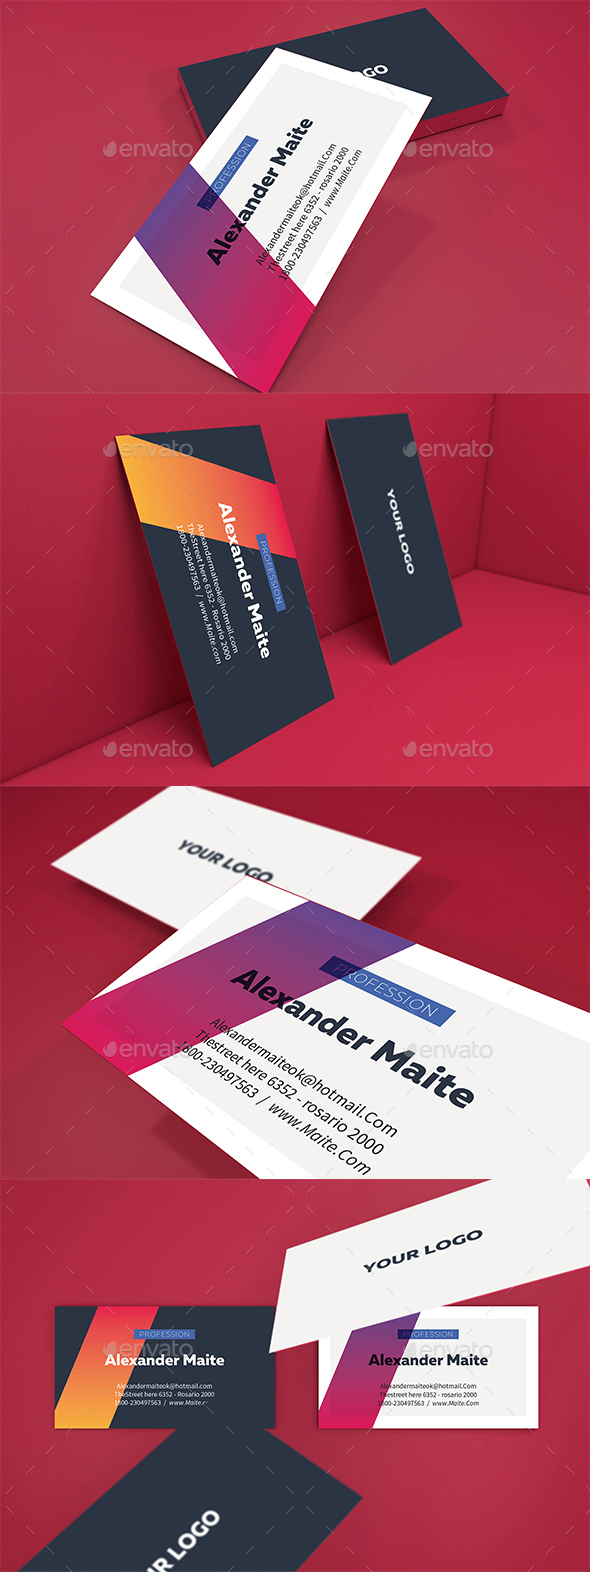 Gradient Business Card Template - Business Cards Print Templates